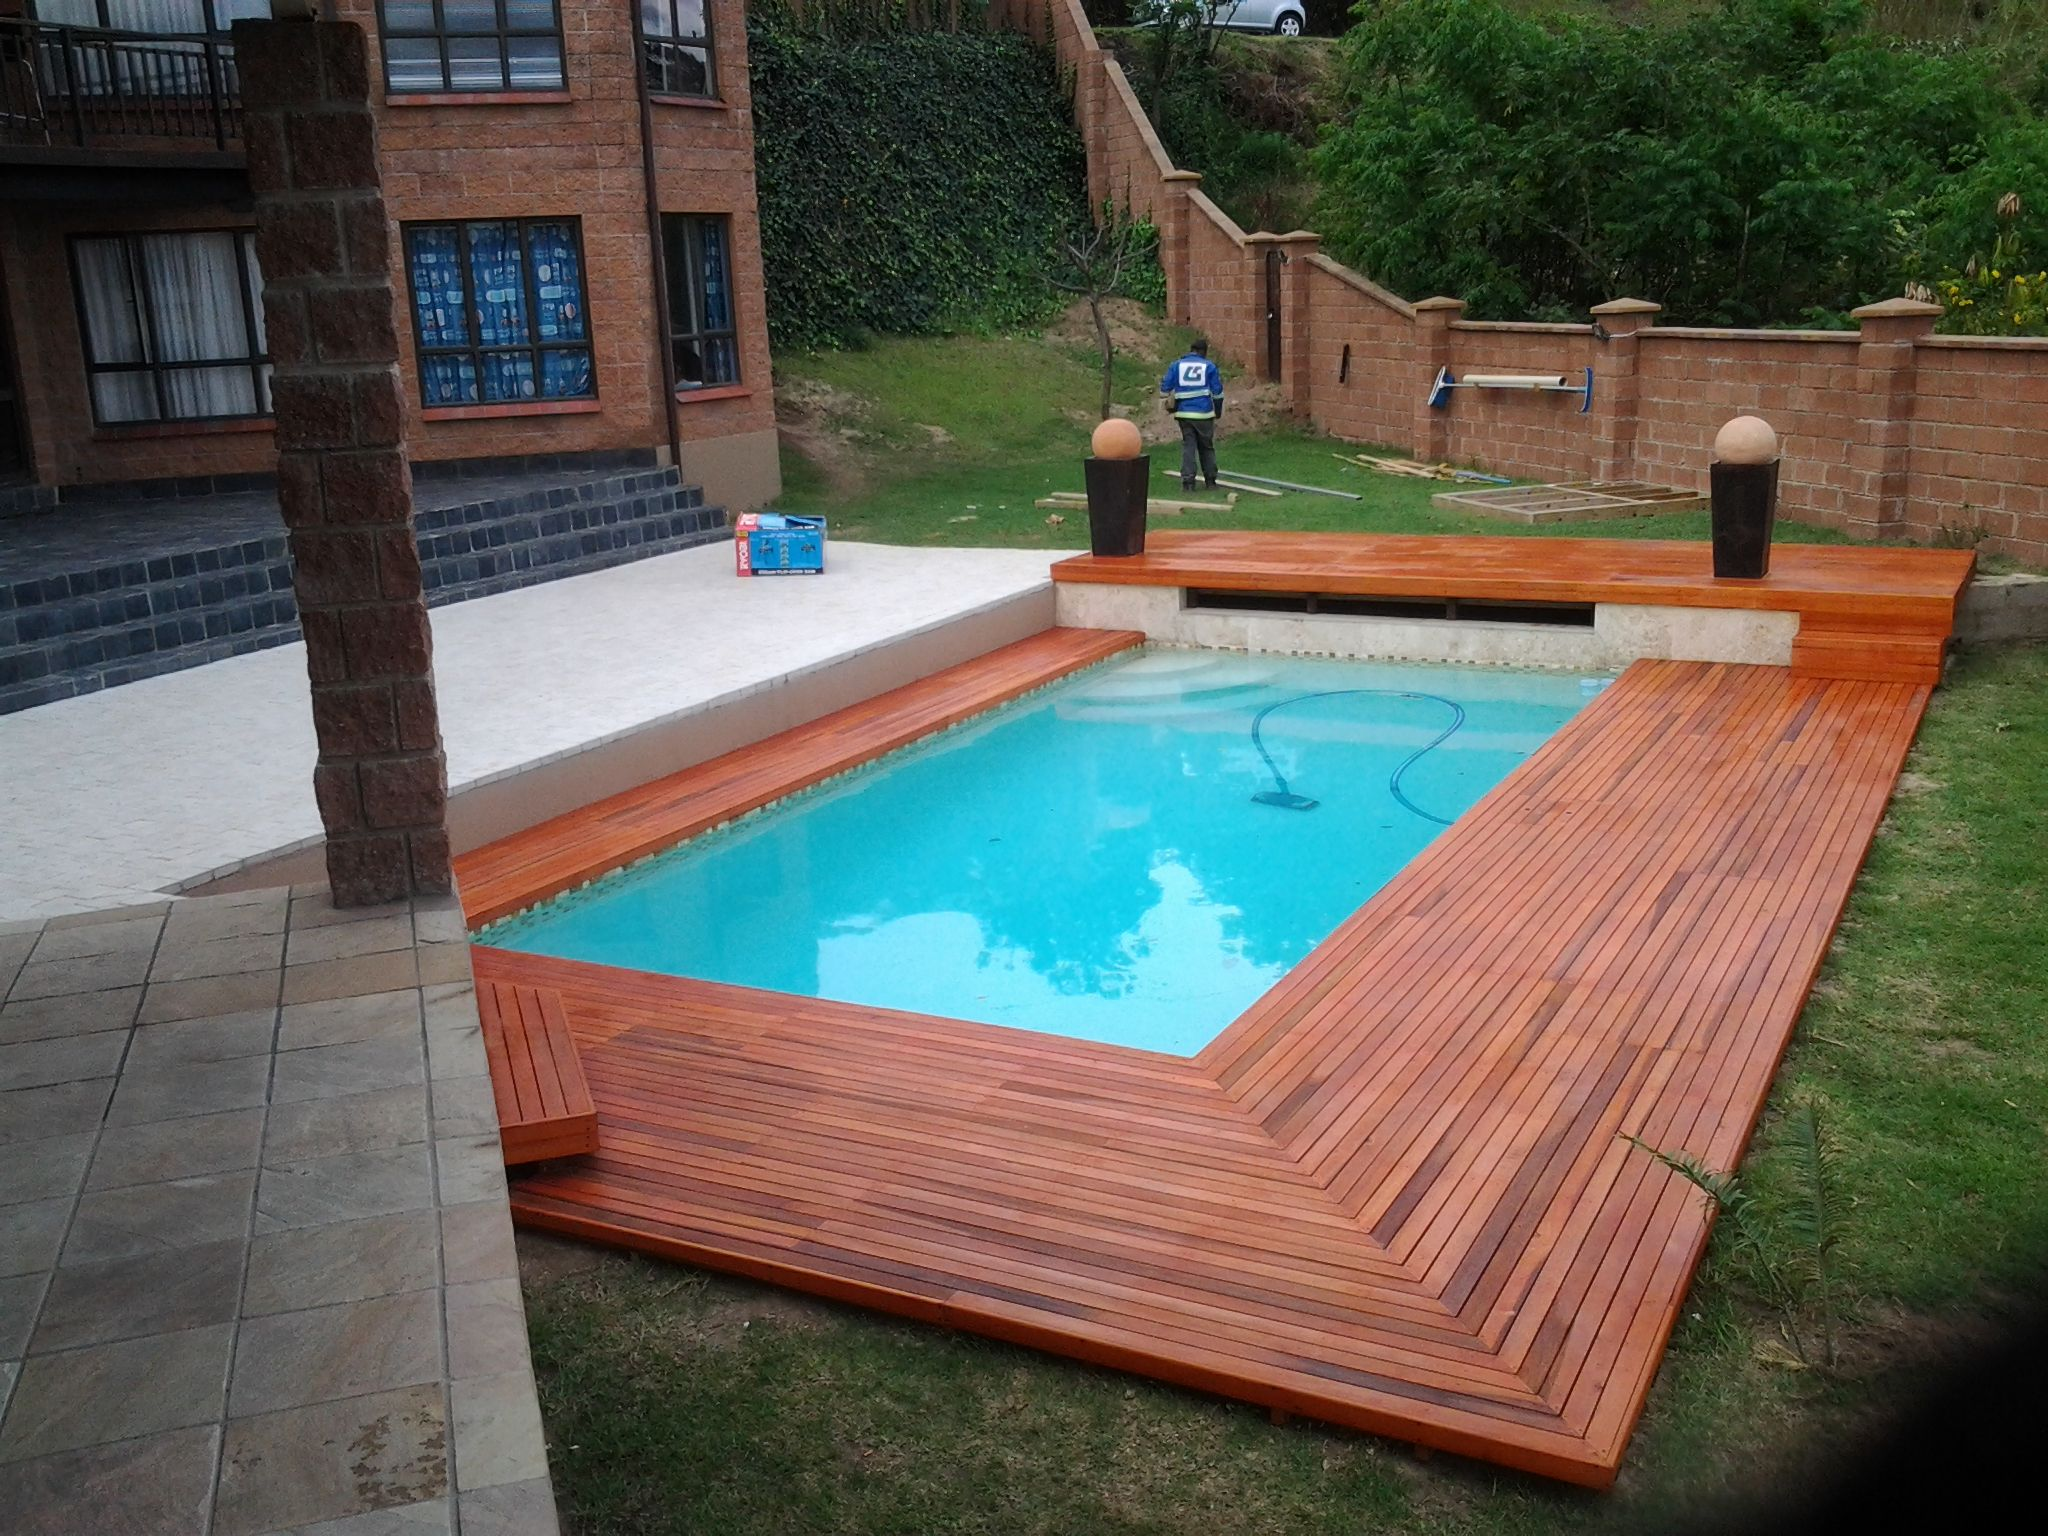 13 Best In Ground Swimming Pool With Wooden Deck Ideas L H Interiordesign Wood Pool Deck Pool Deck Plans Decks Around Pools